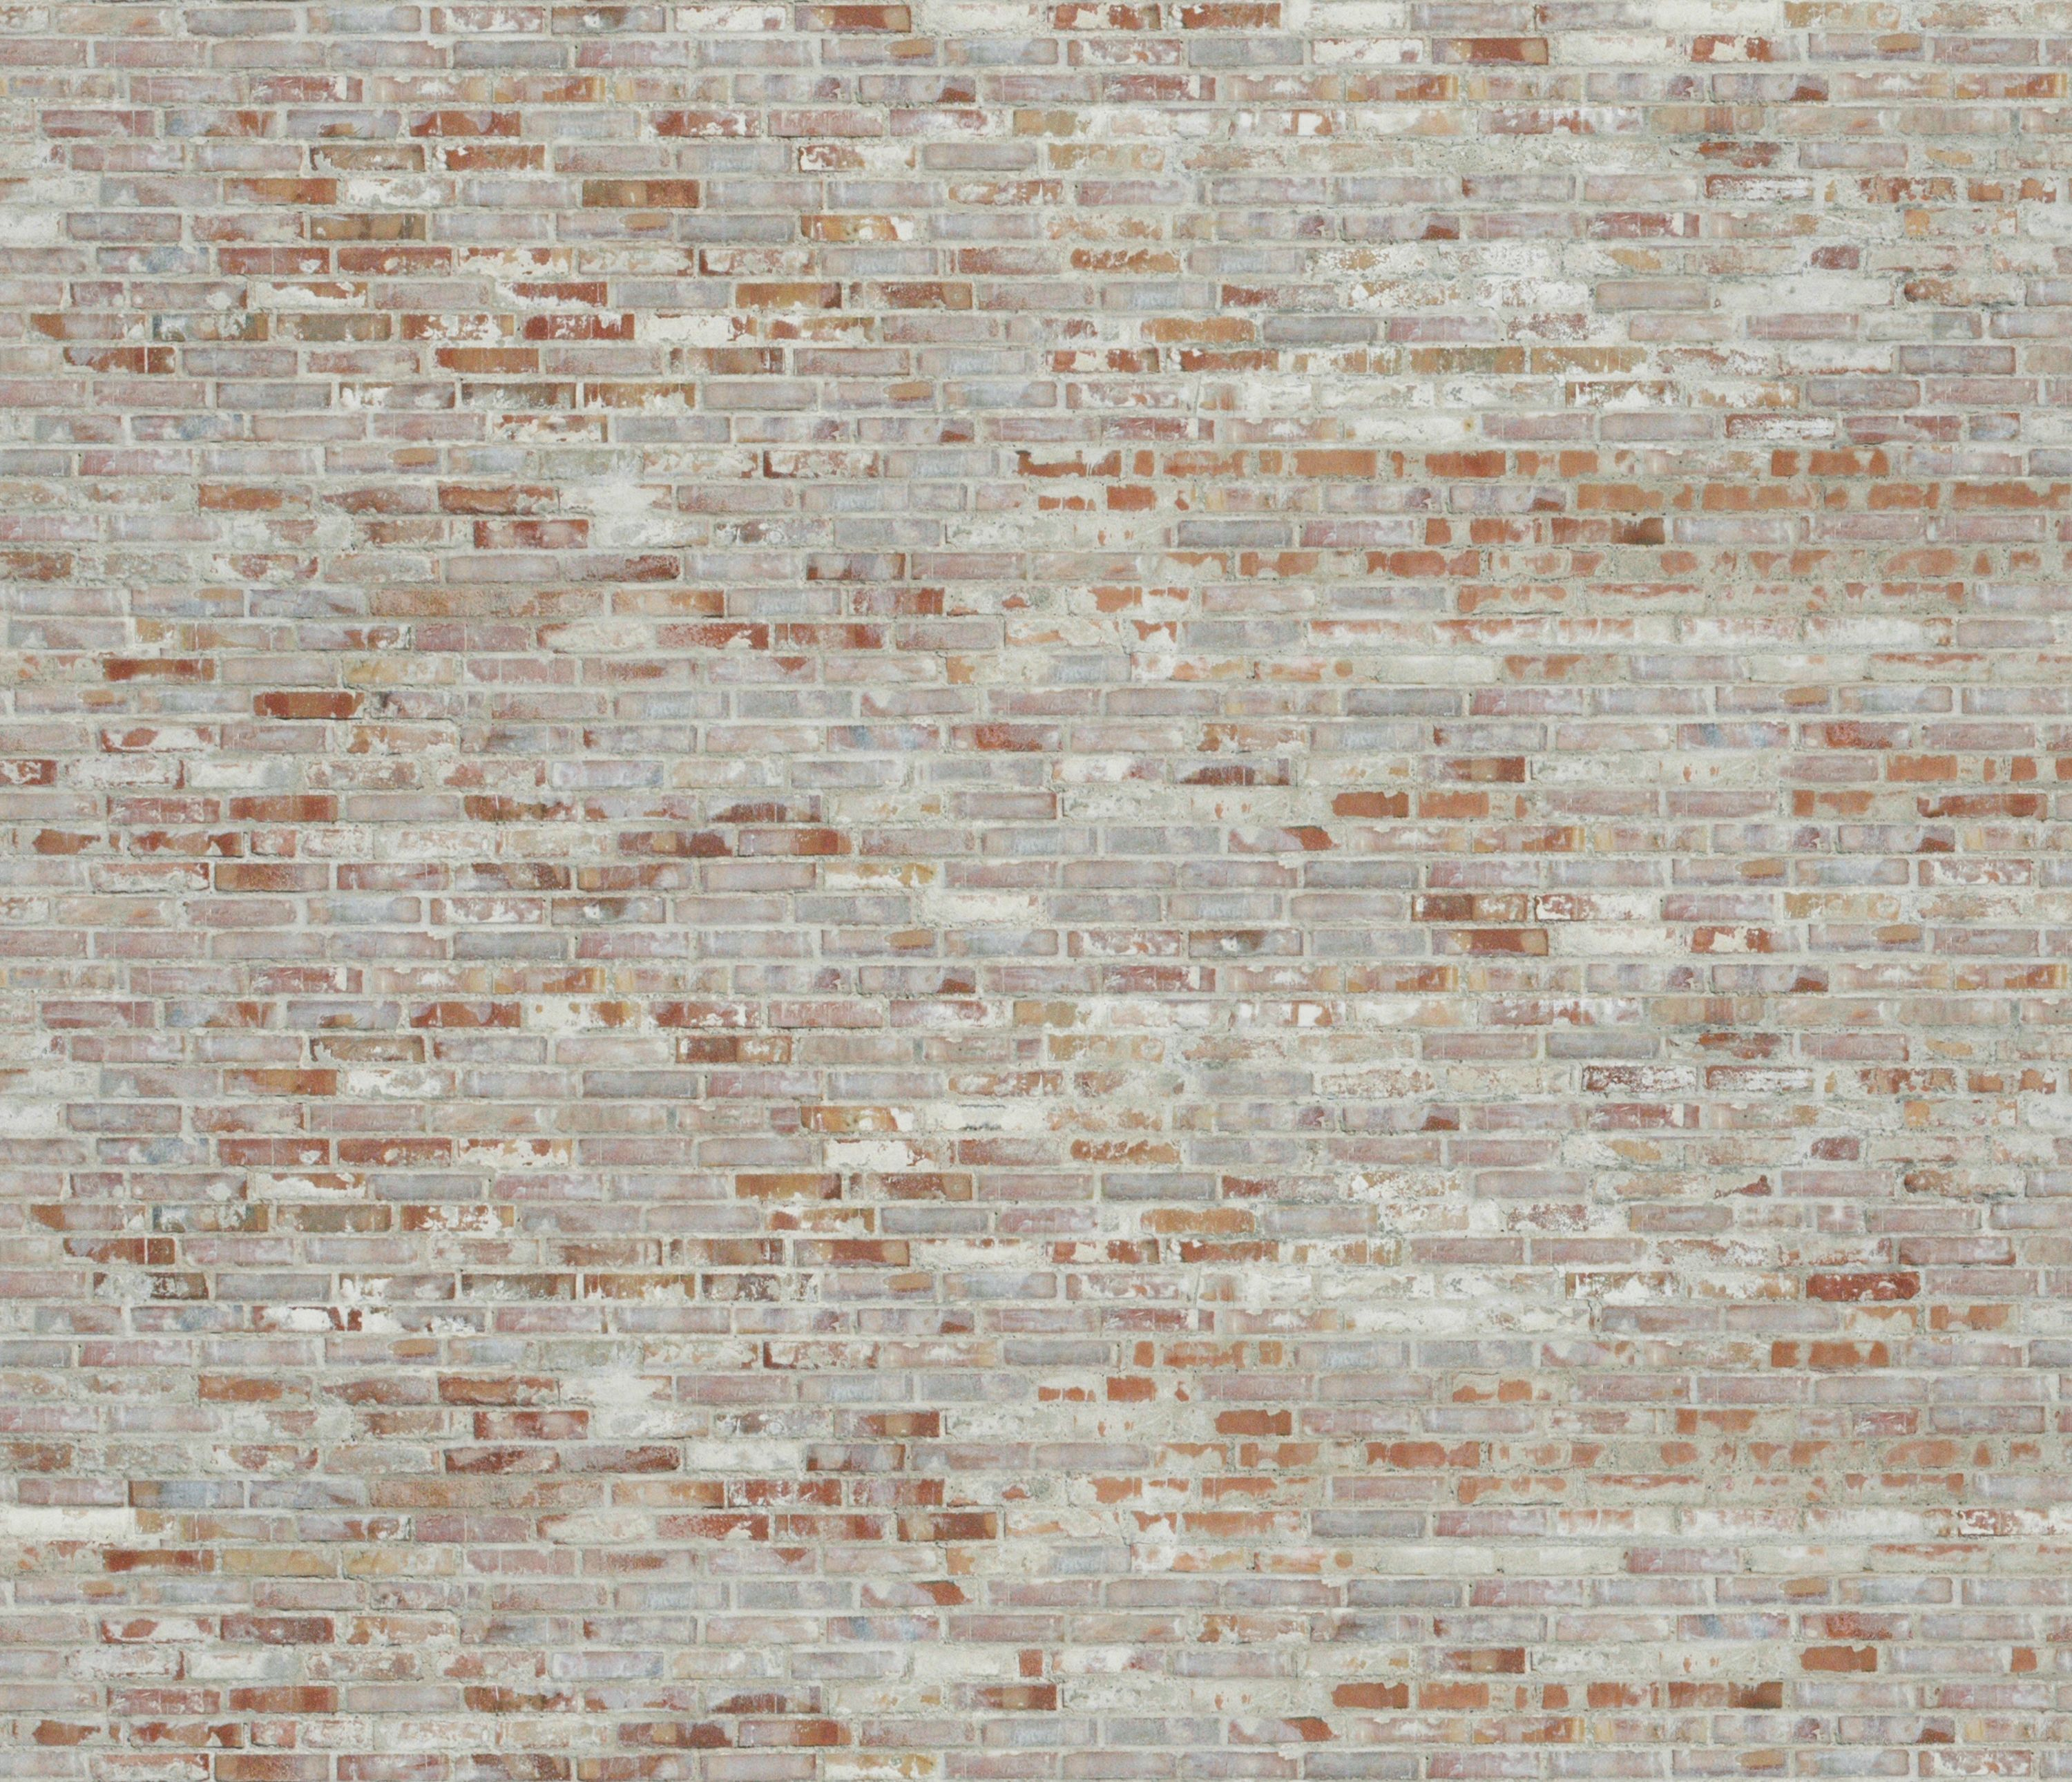 recycled brick seamless texture | Recycled brick, Brick texture ...